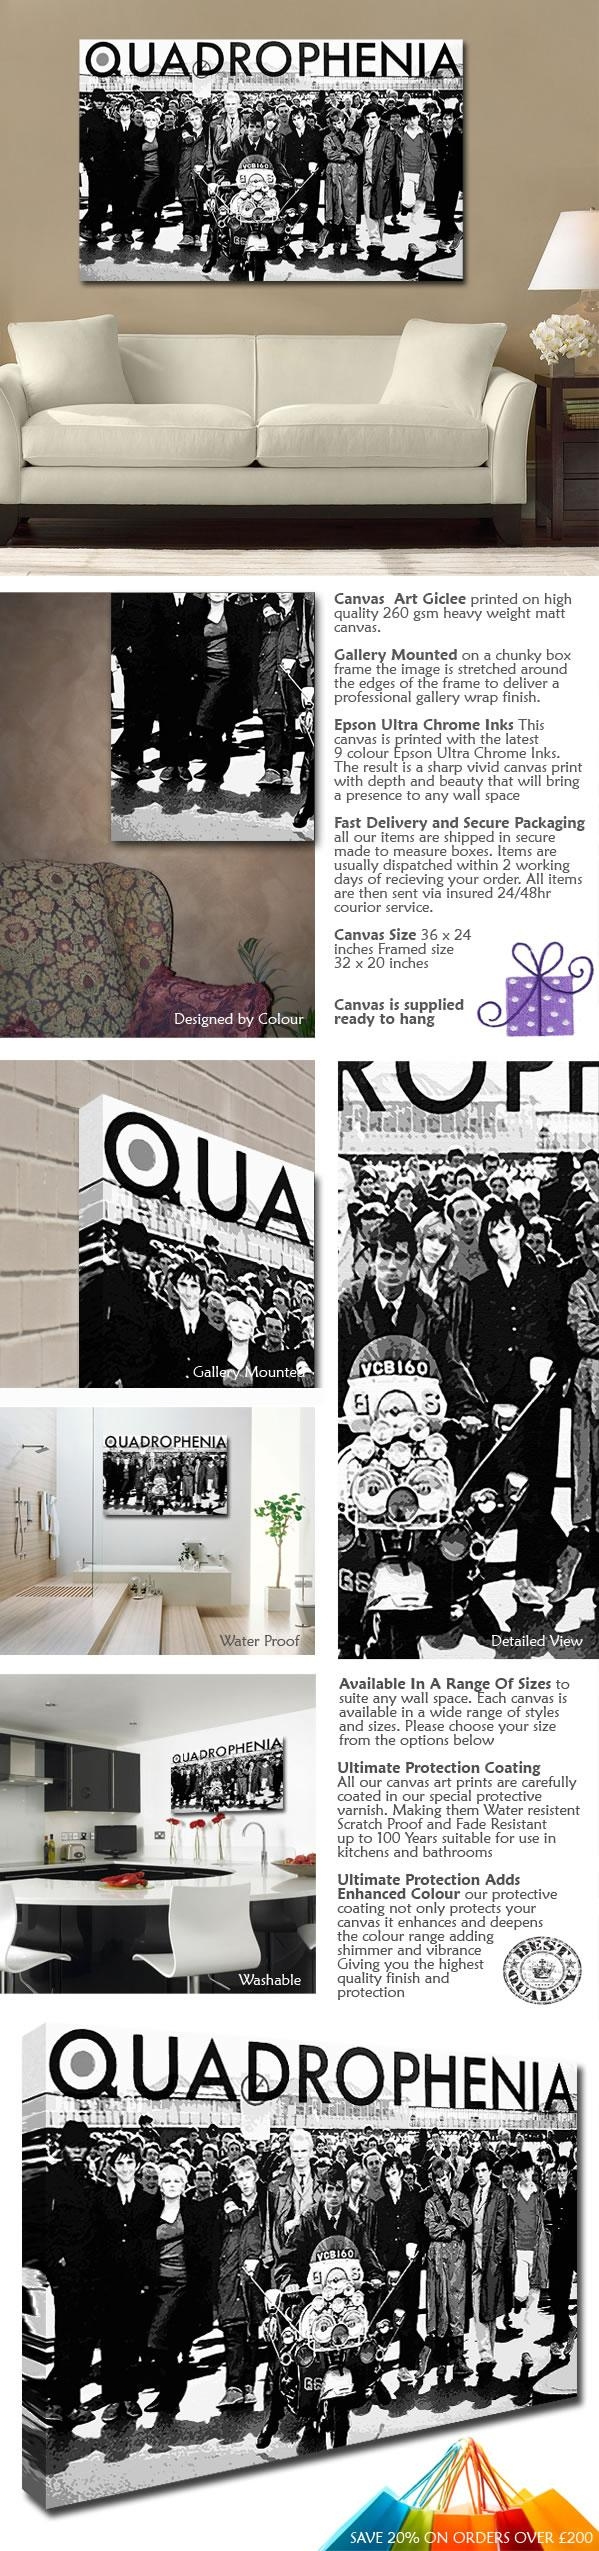 Quadrophenia Canvas regarding Quadrophenia Wall Art